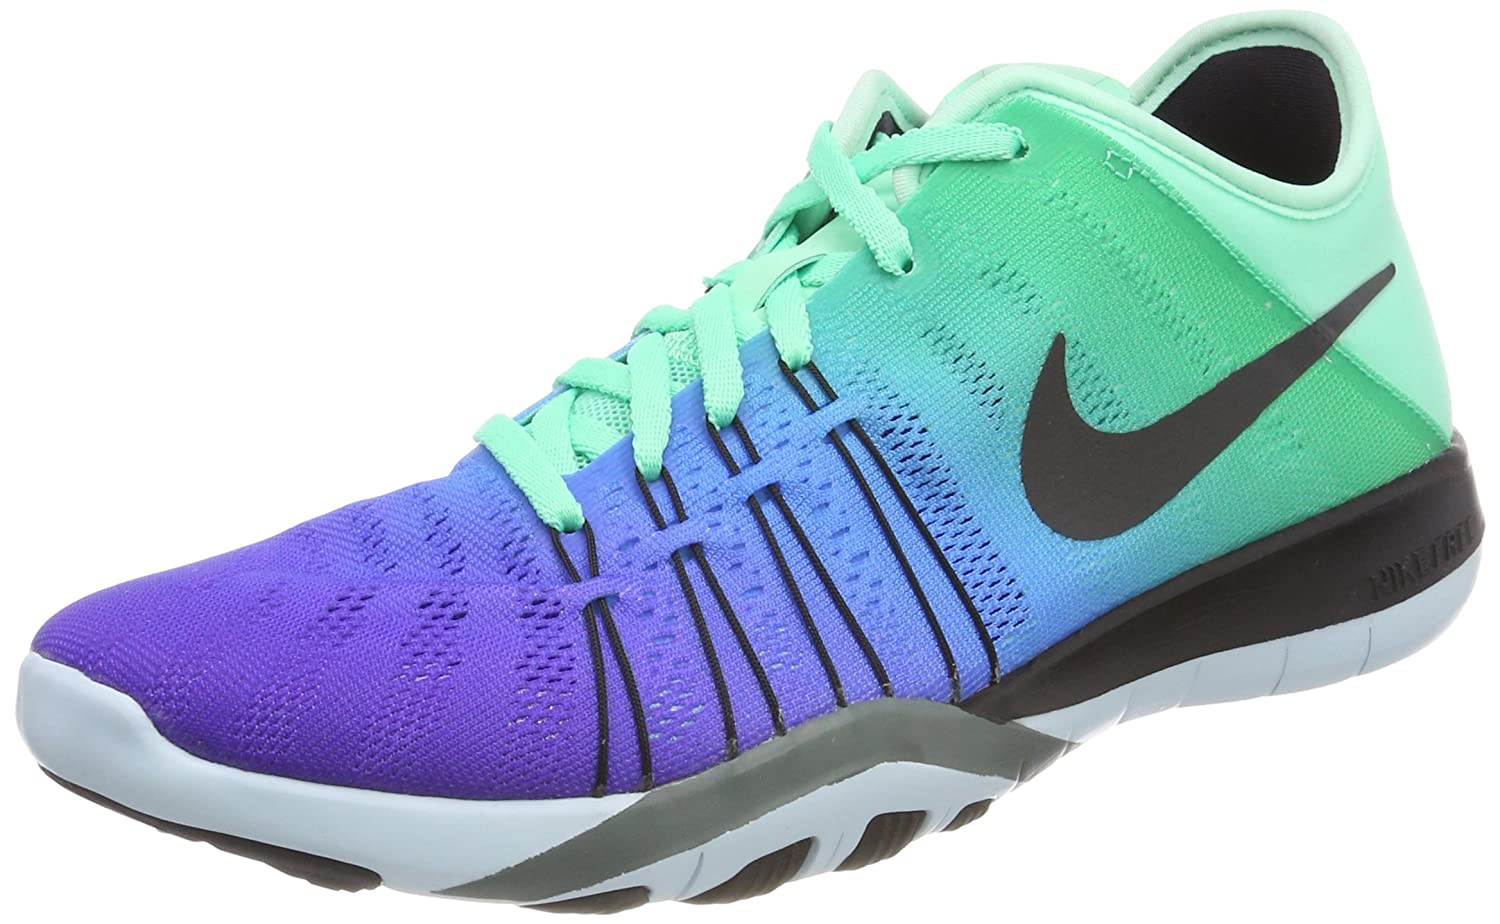 Womens Nike Free TR 6 Training Shoes B01DL10PQ8 11 B(M) US|Green Glow/Black/Glacier Blue/Hasta